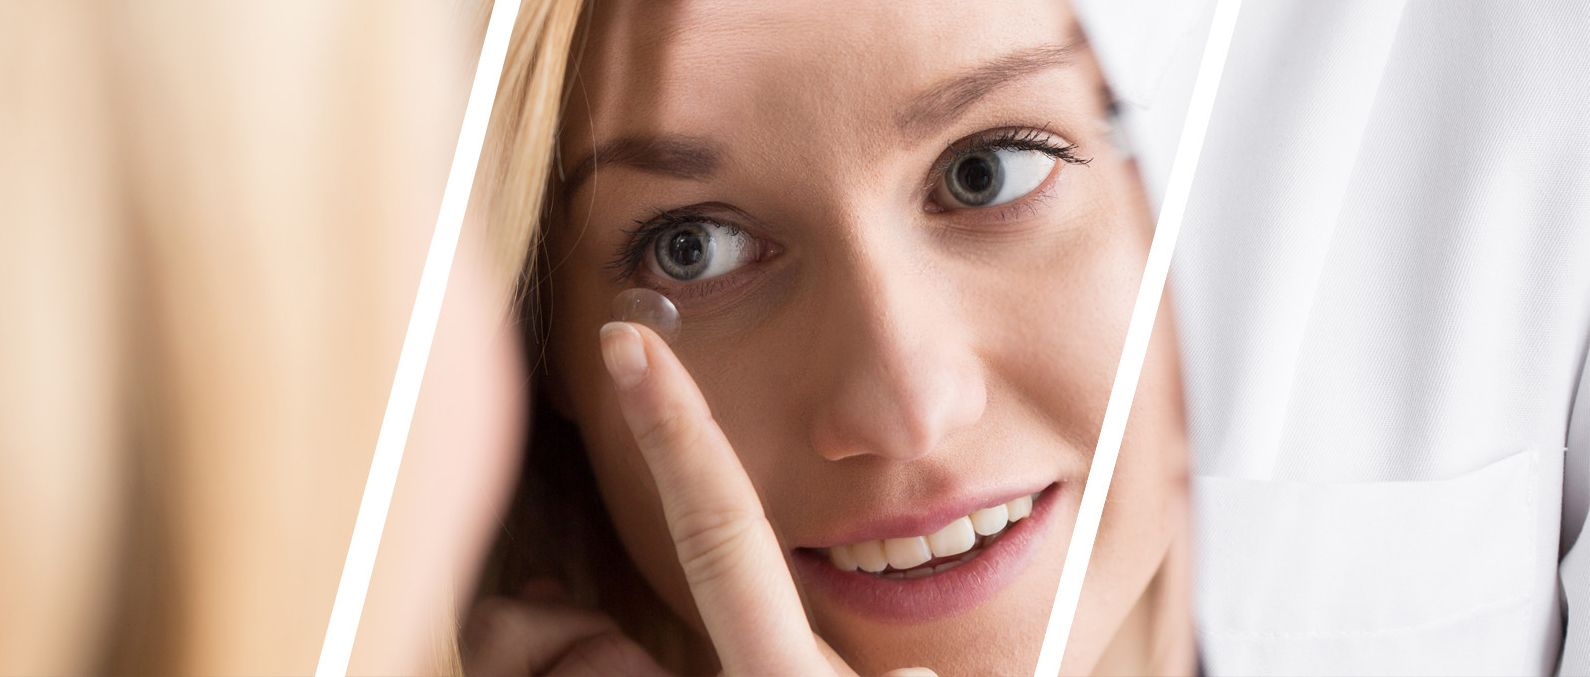 lady putting in contact lenses